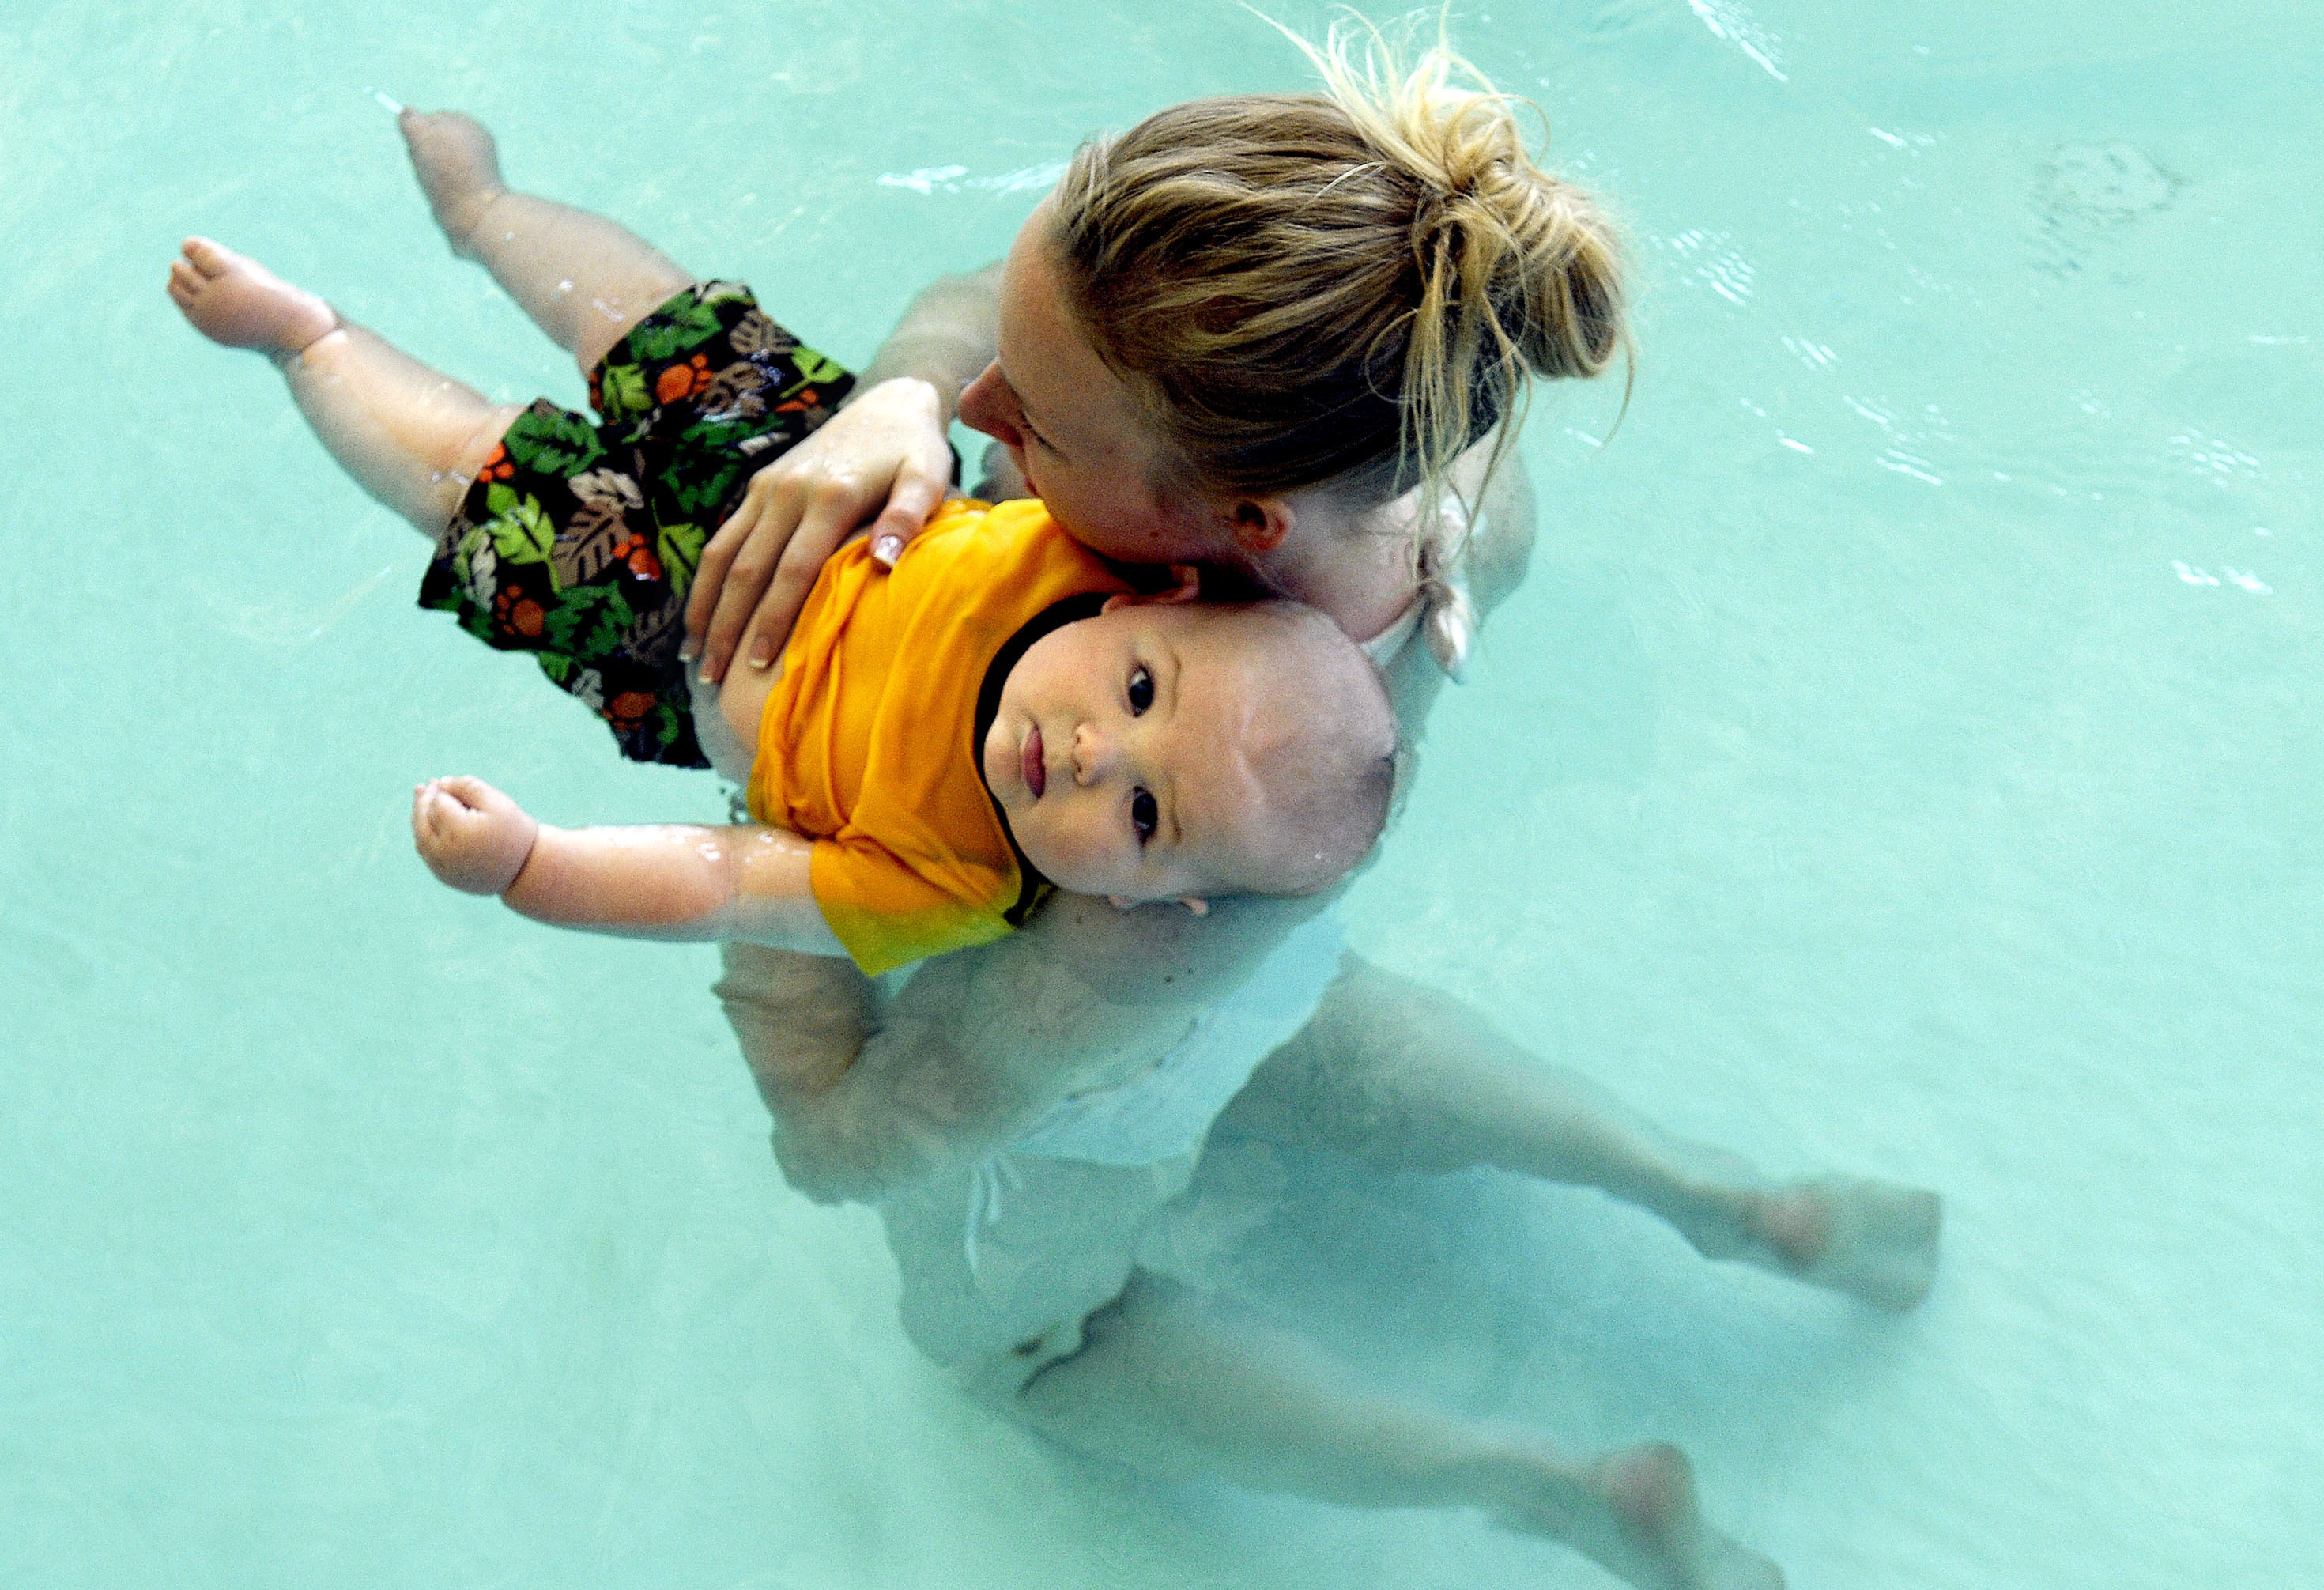 Babies, toddlers, learn water ways   The Spokesman-Review